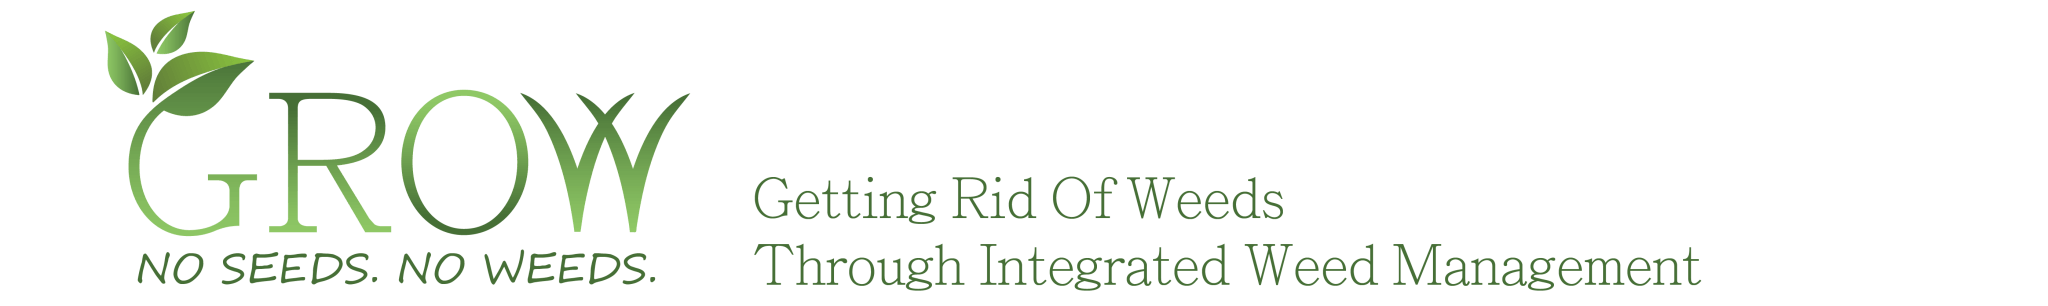 Integrated Weed Management Resource Center